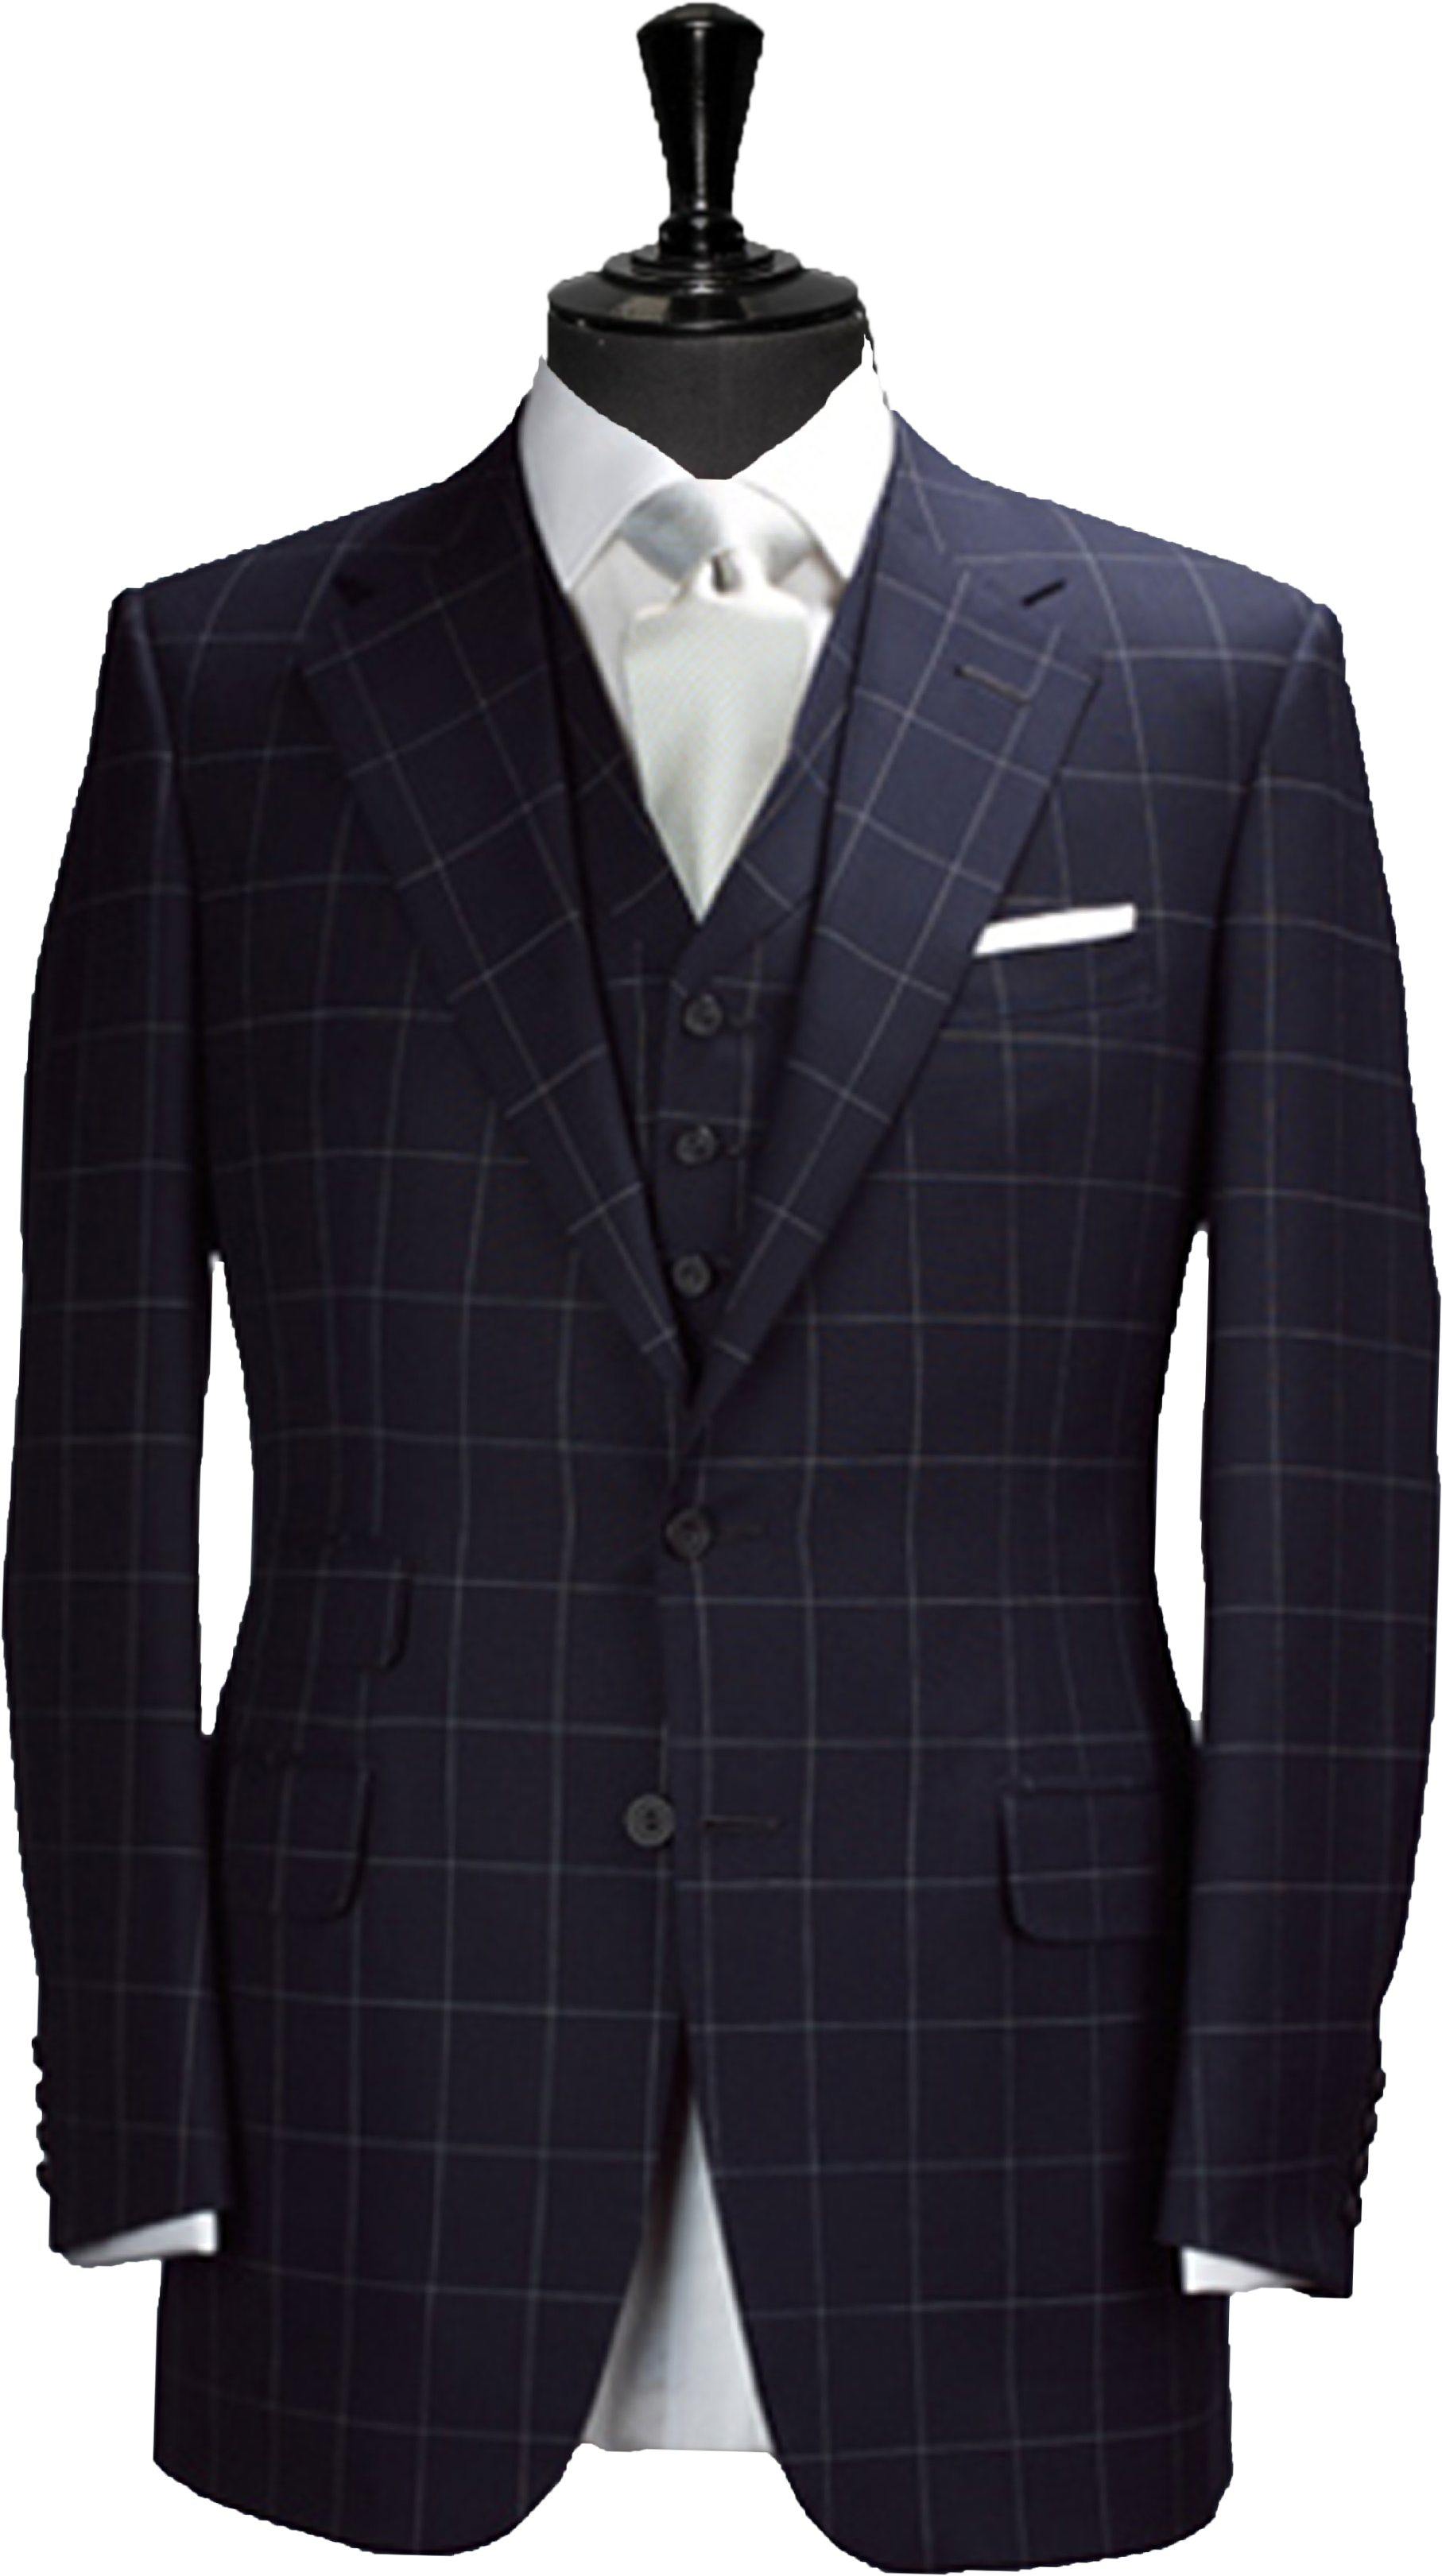 Custom Suits Bespoke Suits Fitted Suits in New York